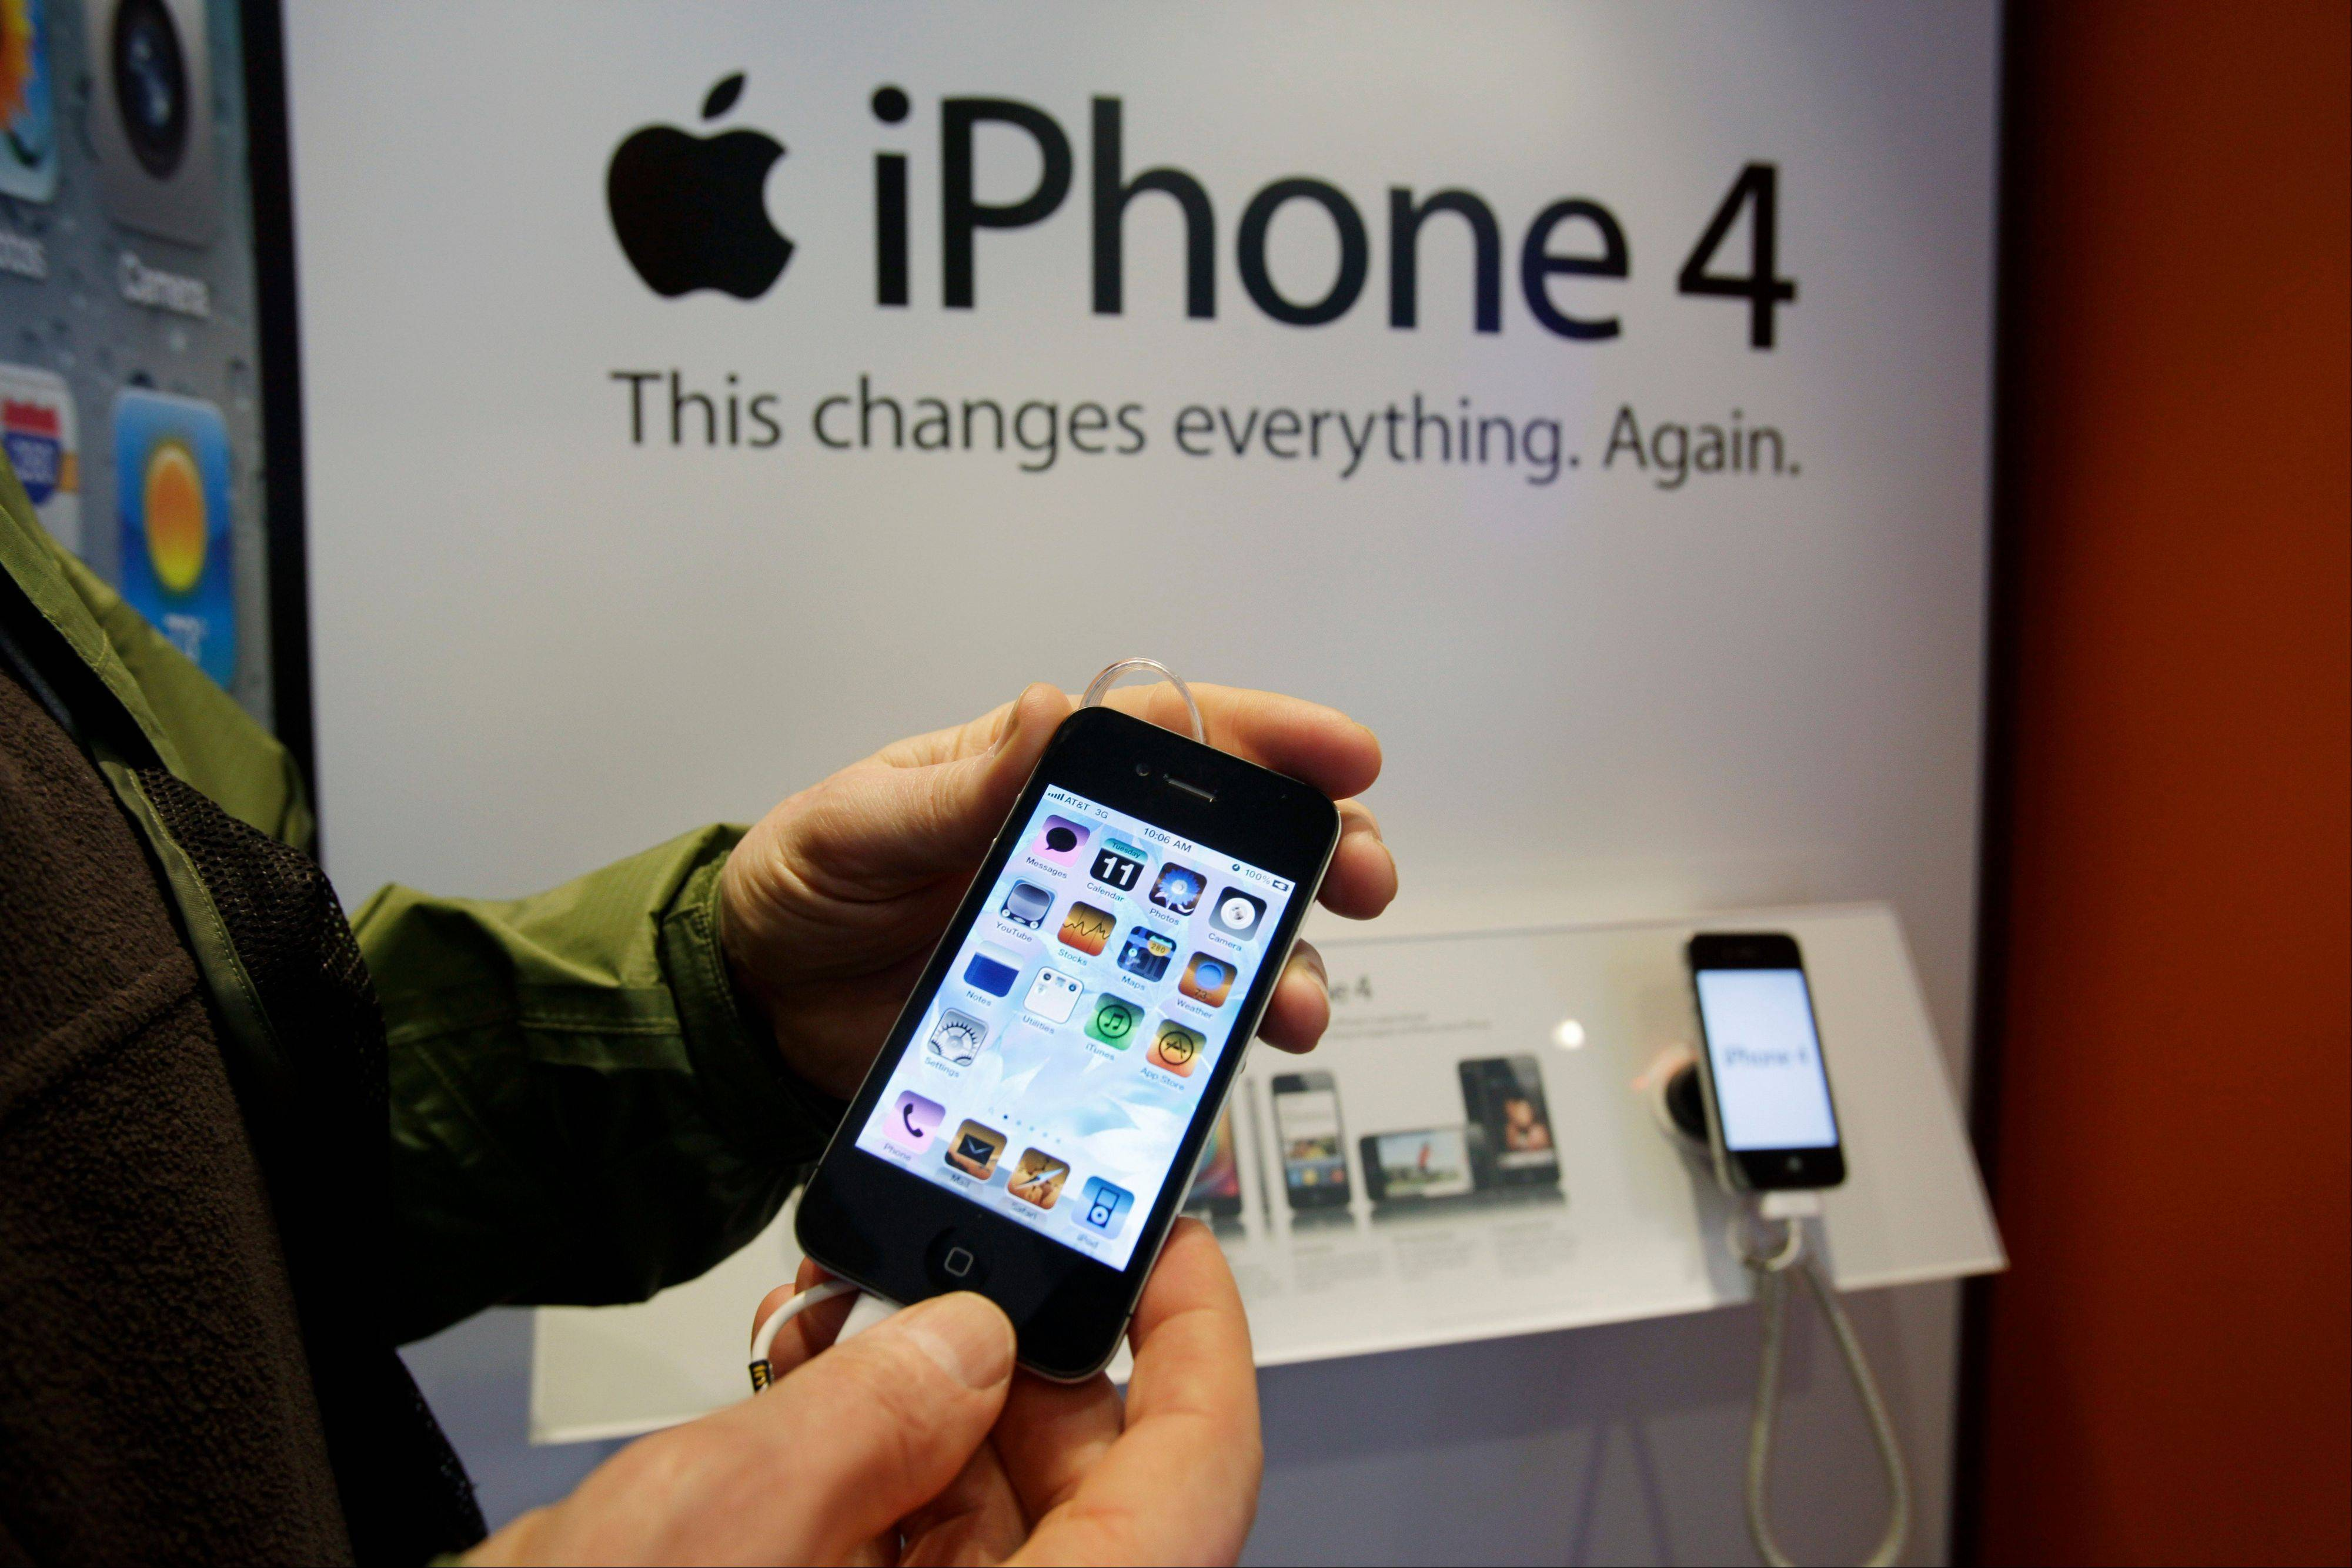 A U.S. trade agency on Tuesday June 4, 2013 issued a ban on imports of Apple's iPhone 4 and a variant of the iPad 2 after finding the devices violate a patent held by South Korean rival Samsung Electronics.